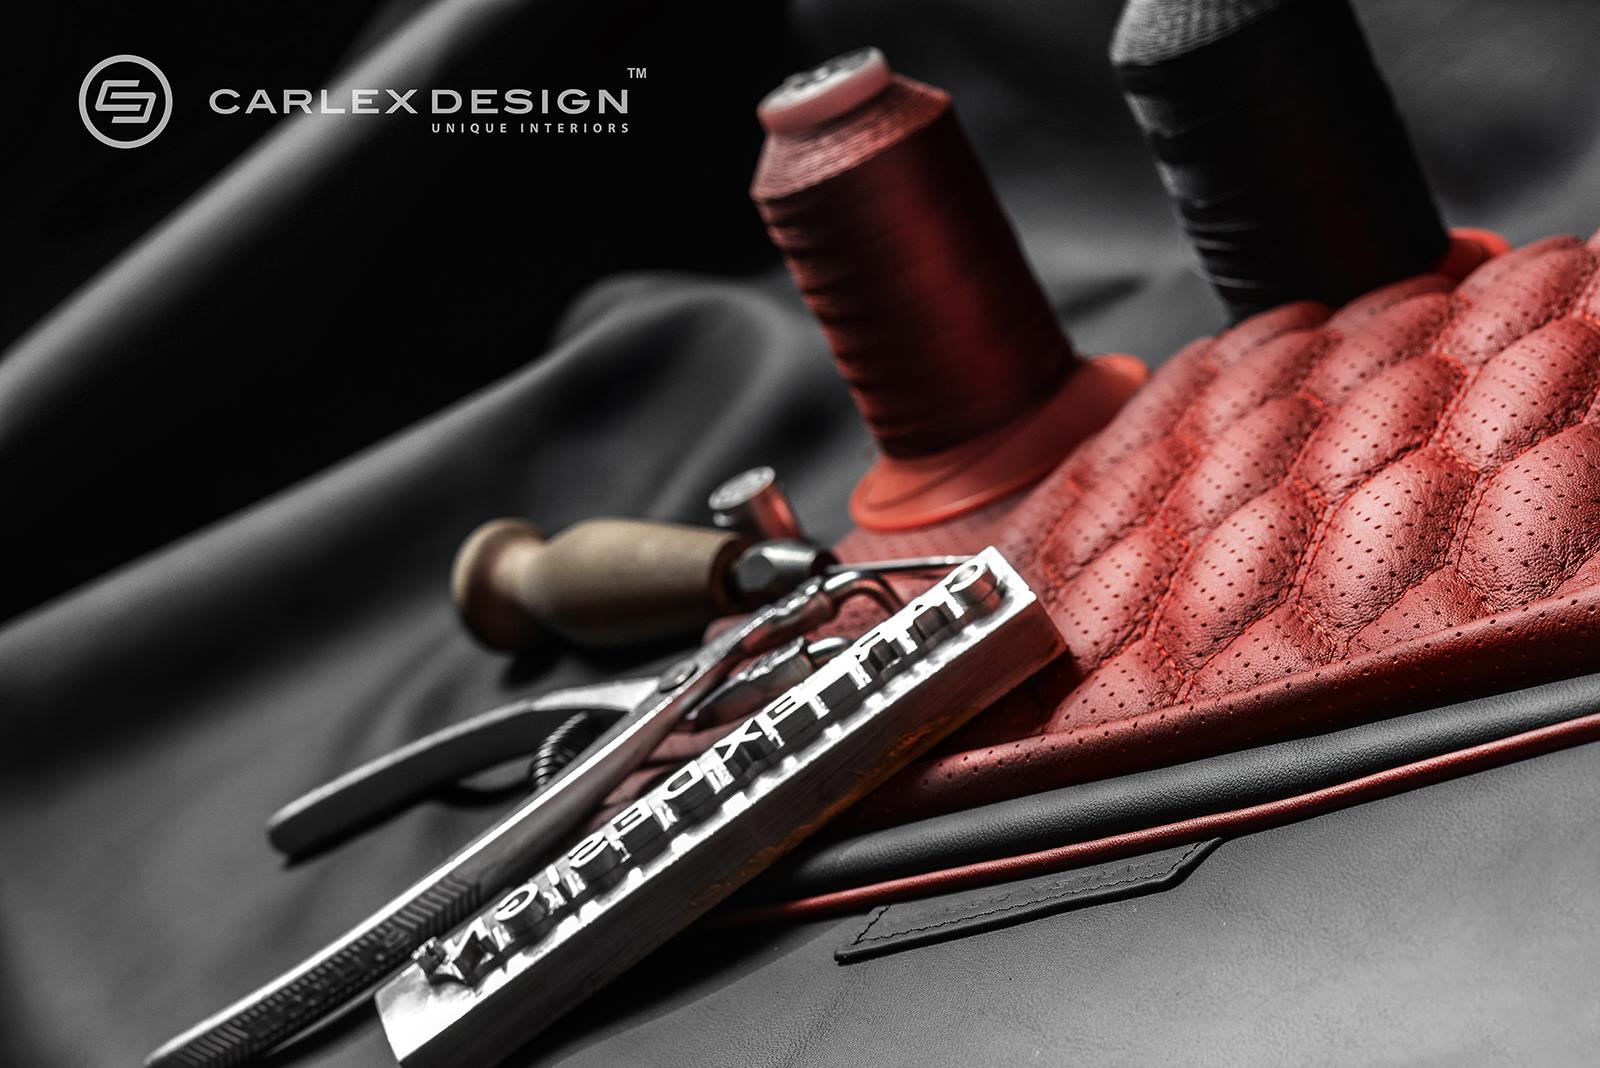 Mercedes v class gets full treatment from carlex design - Audi A6 Gets Red Honeycomb Interior From Carlex Design